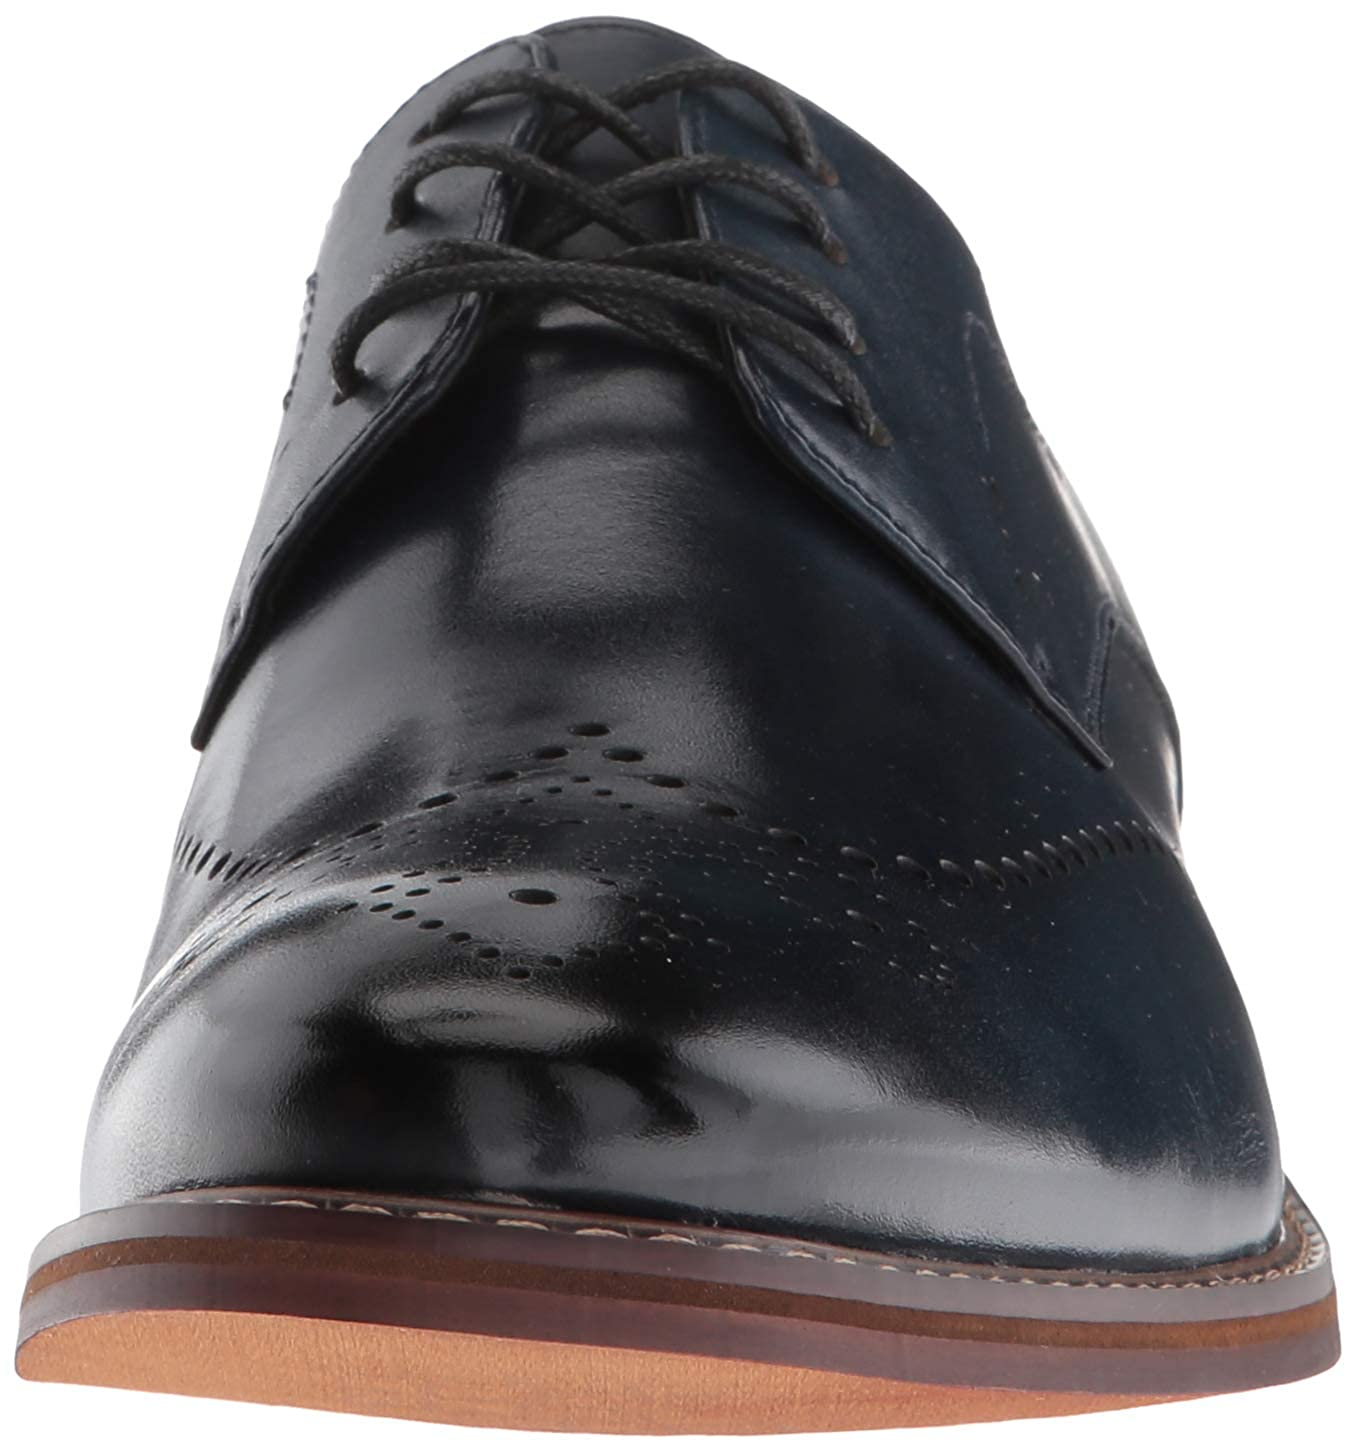 STACY ADAMS Mens Alaire Wingtip Lace-up Oxford